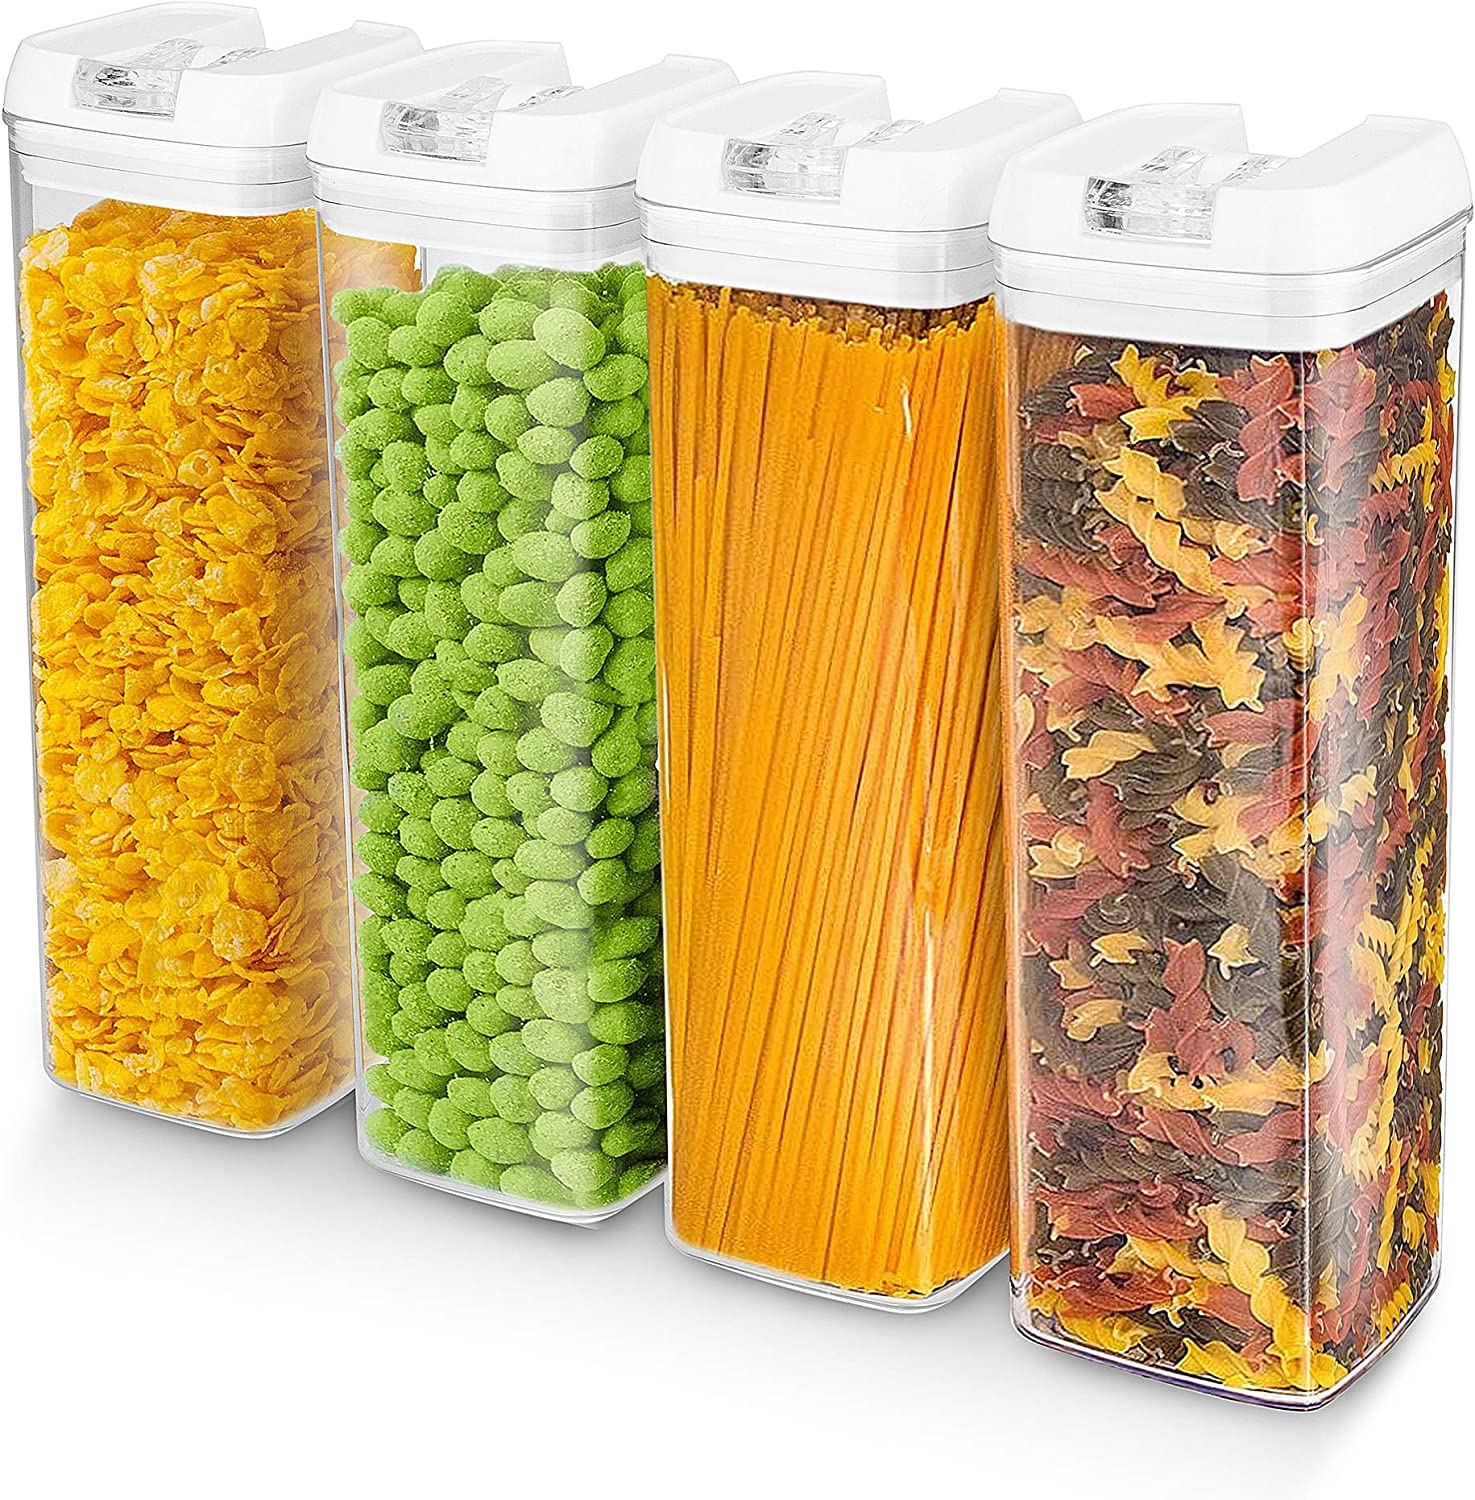 4-Piece Airtight Food Storage Containers Set, ENLOY BPA-Free Plastic Pantry & Kitchen Canisters with Lids for Cereal, Spaghetti, Noodles, Pasta, 1.9L (60oz)